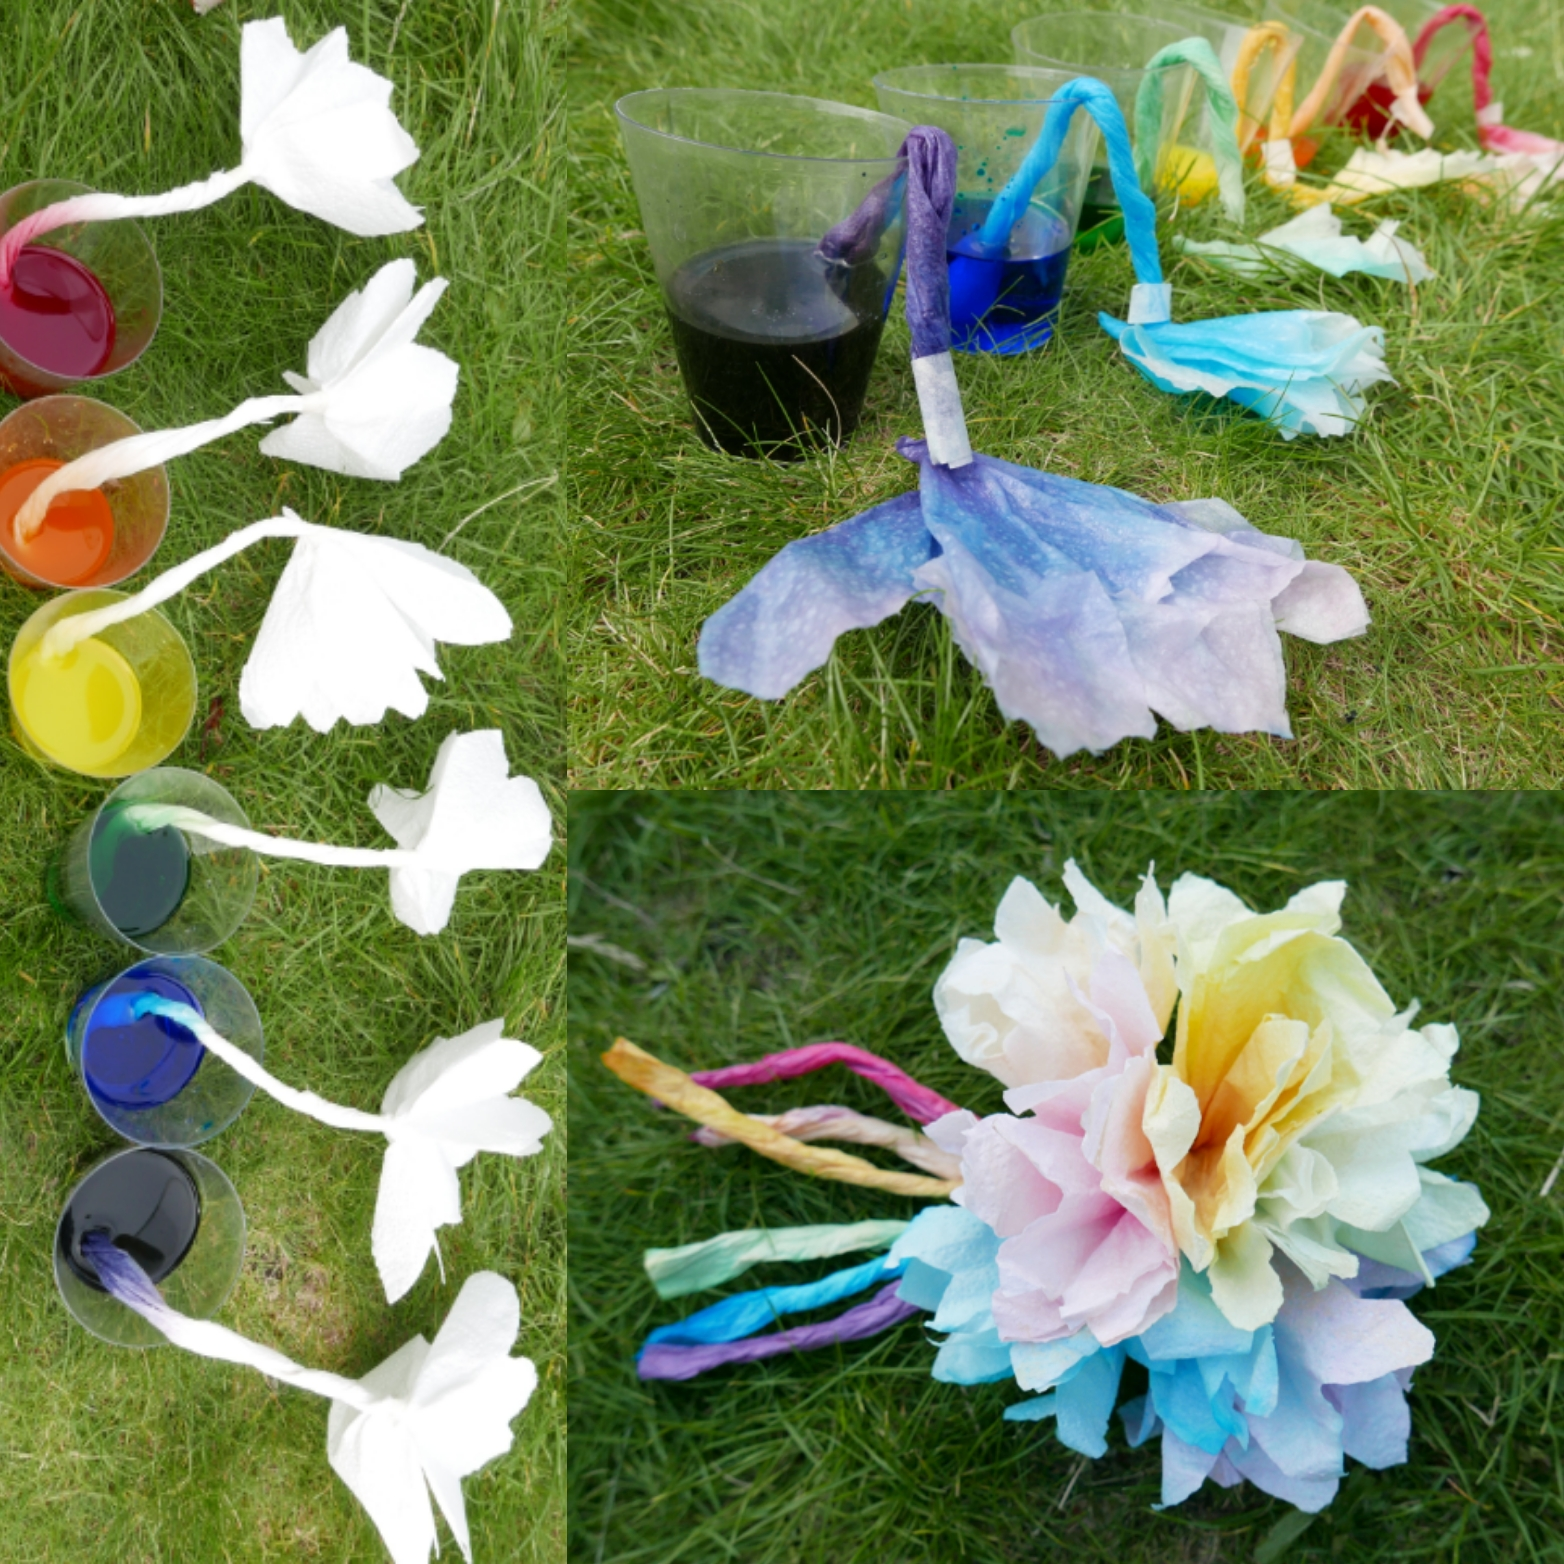 Colourful Capillary Action Experiment Childsplayabc Nature Is Our Playground